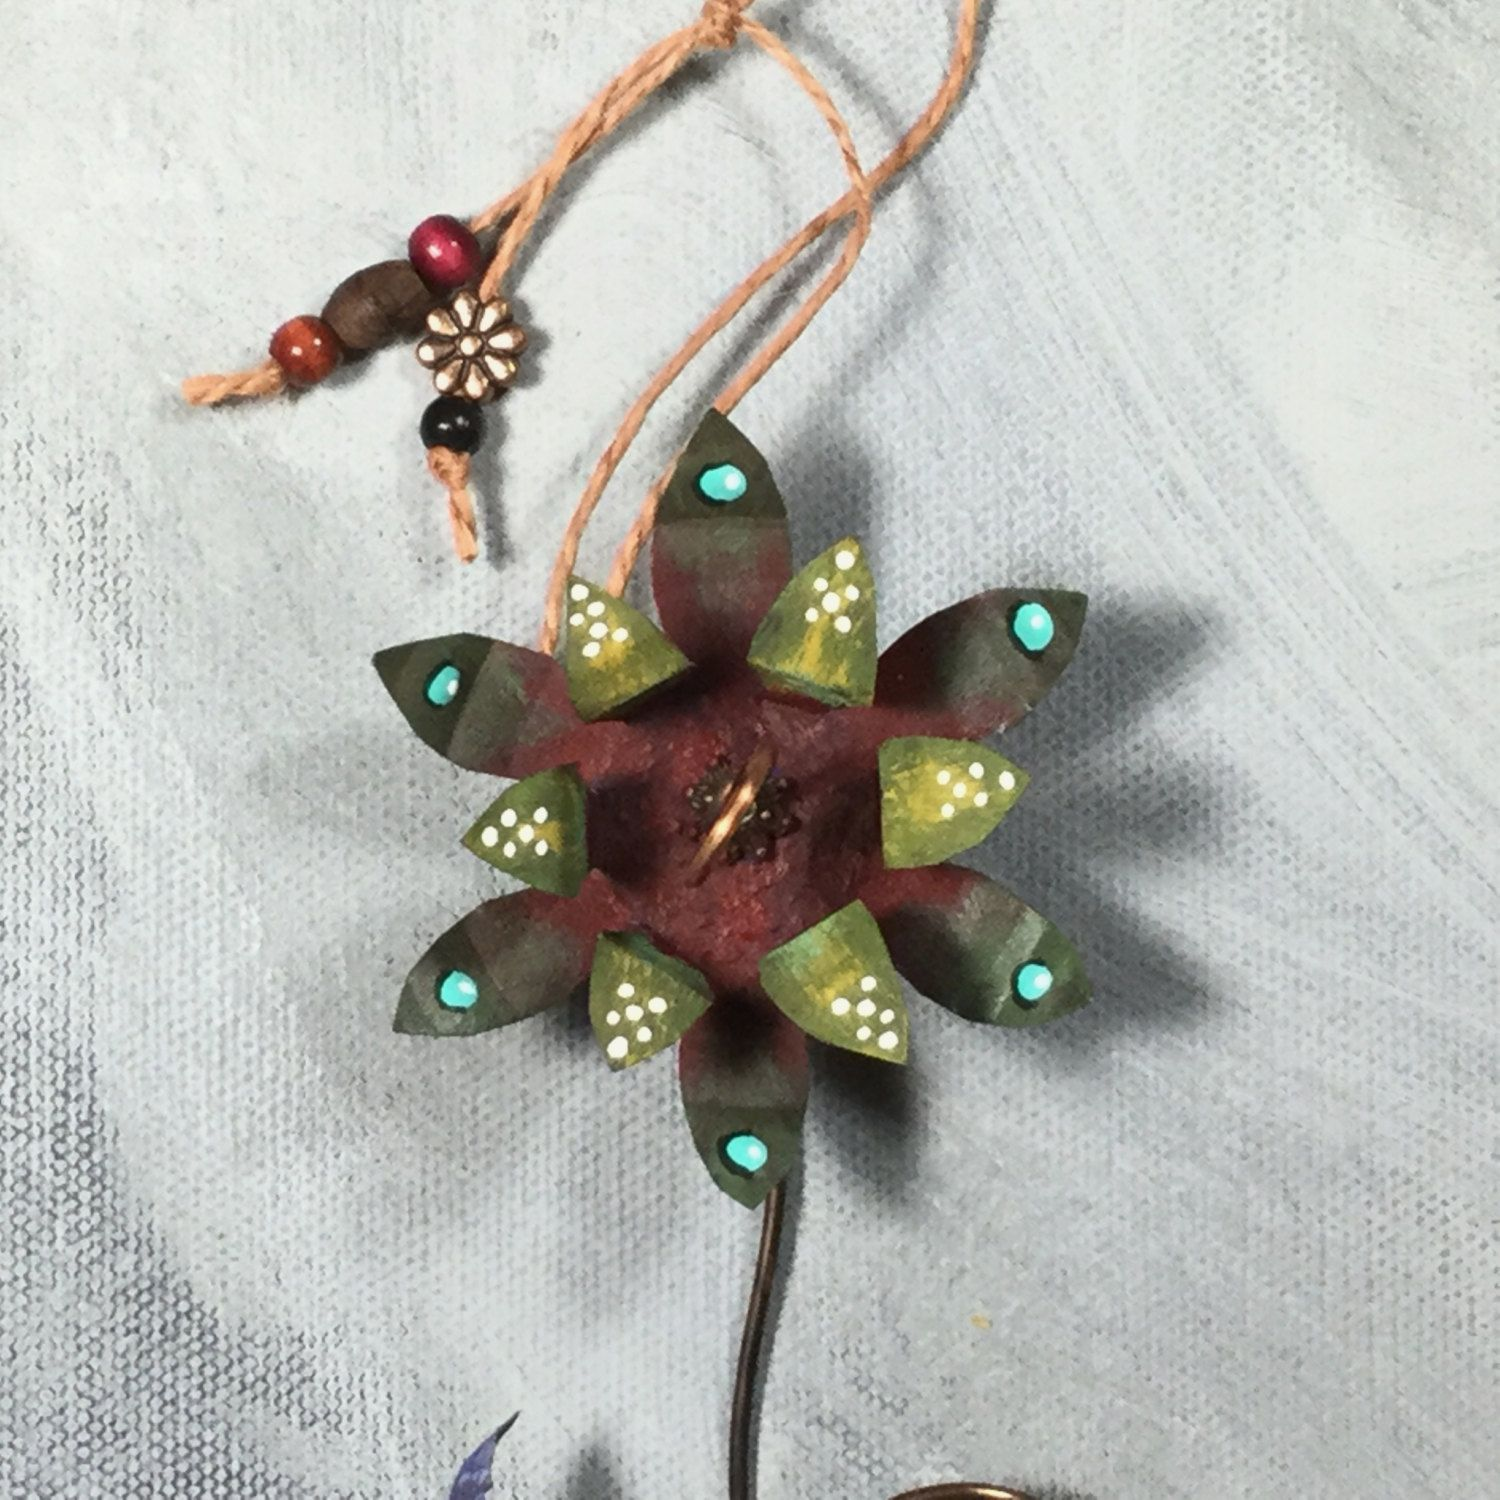 Metal Flower Wall Hanging Green And Red Wall Hanging Metal Flower Ornament Hand Made And